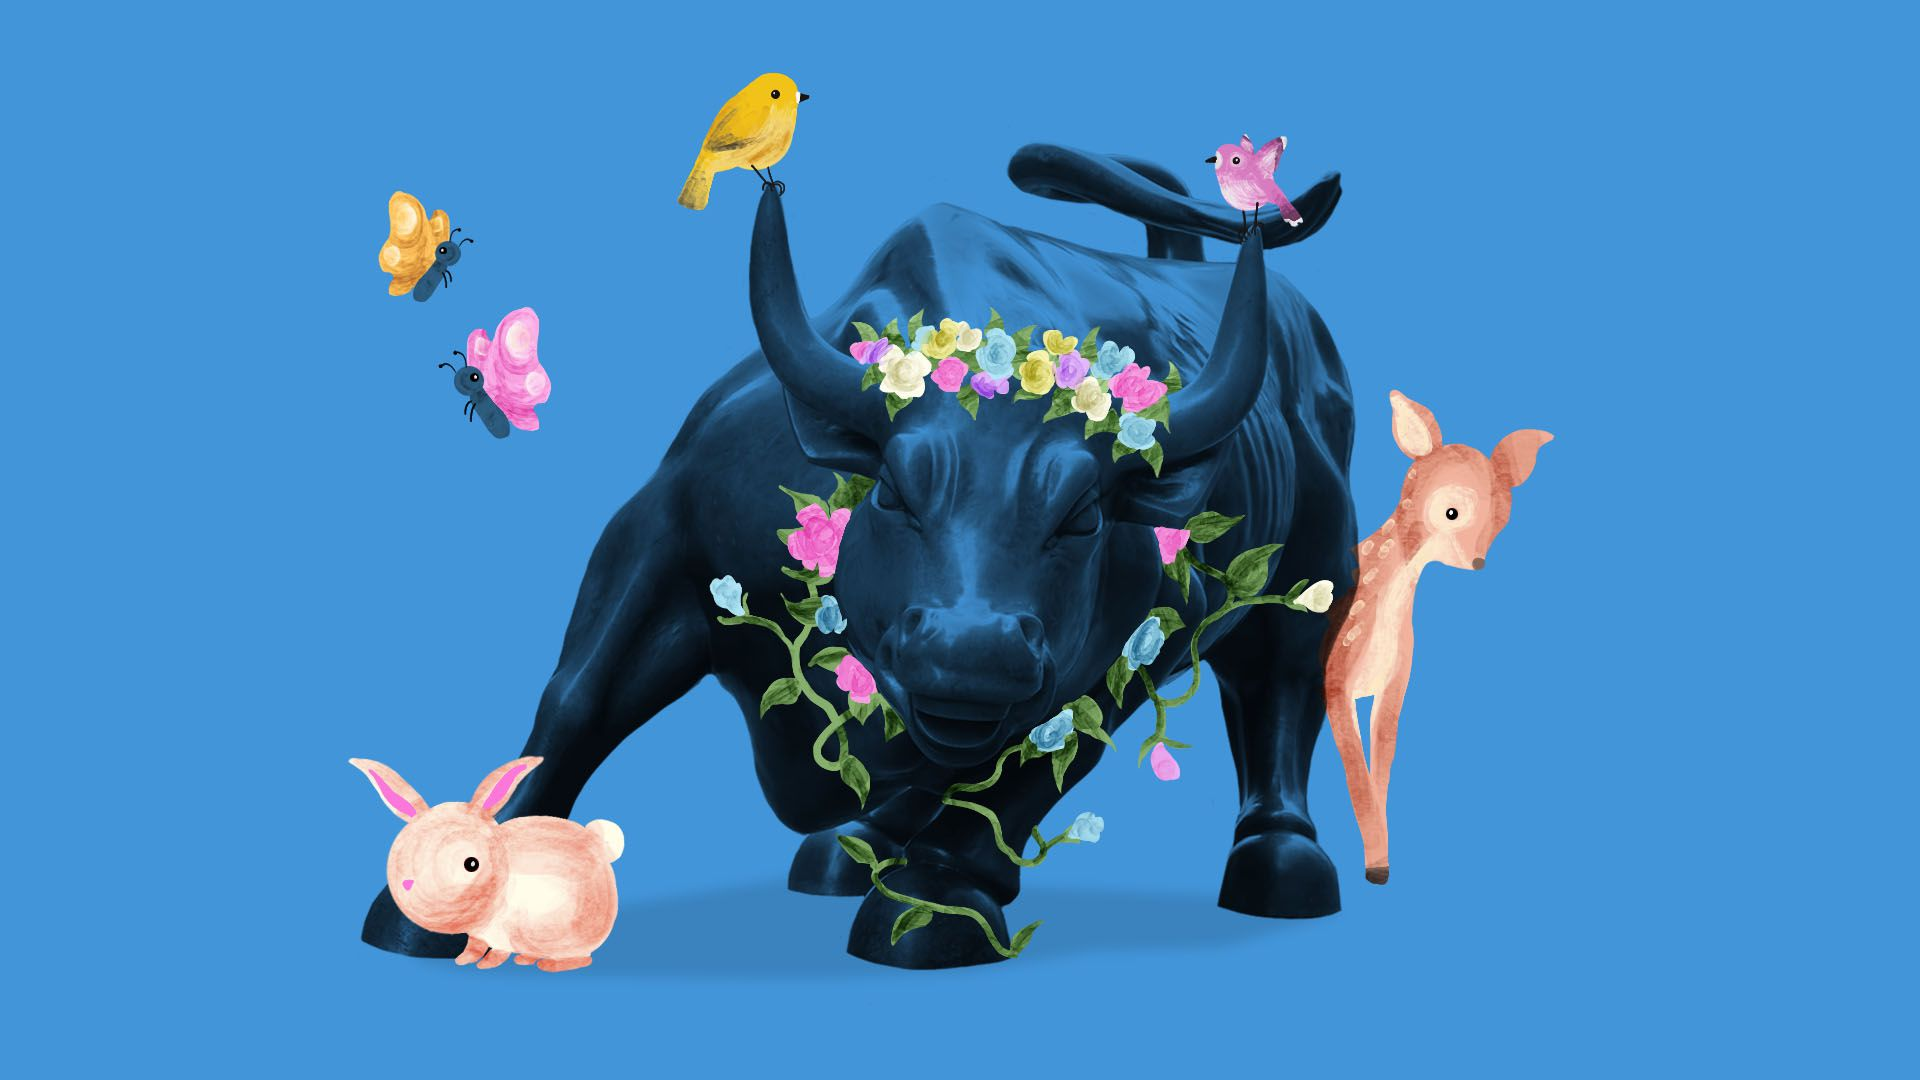 Illustration of Wall Street bull surrounded by nature